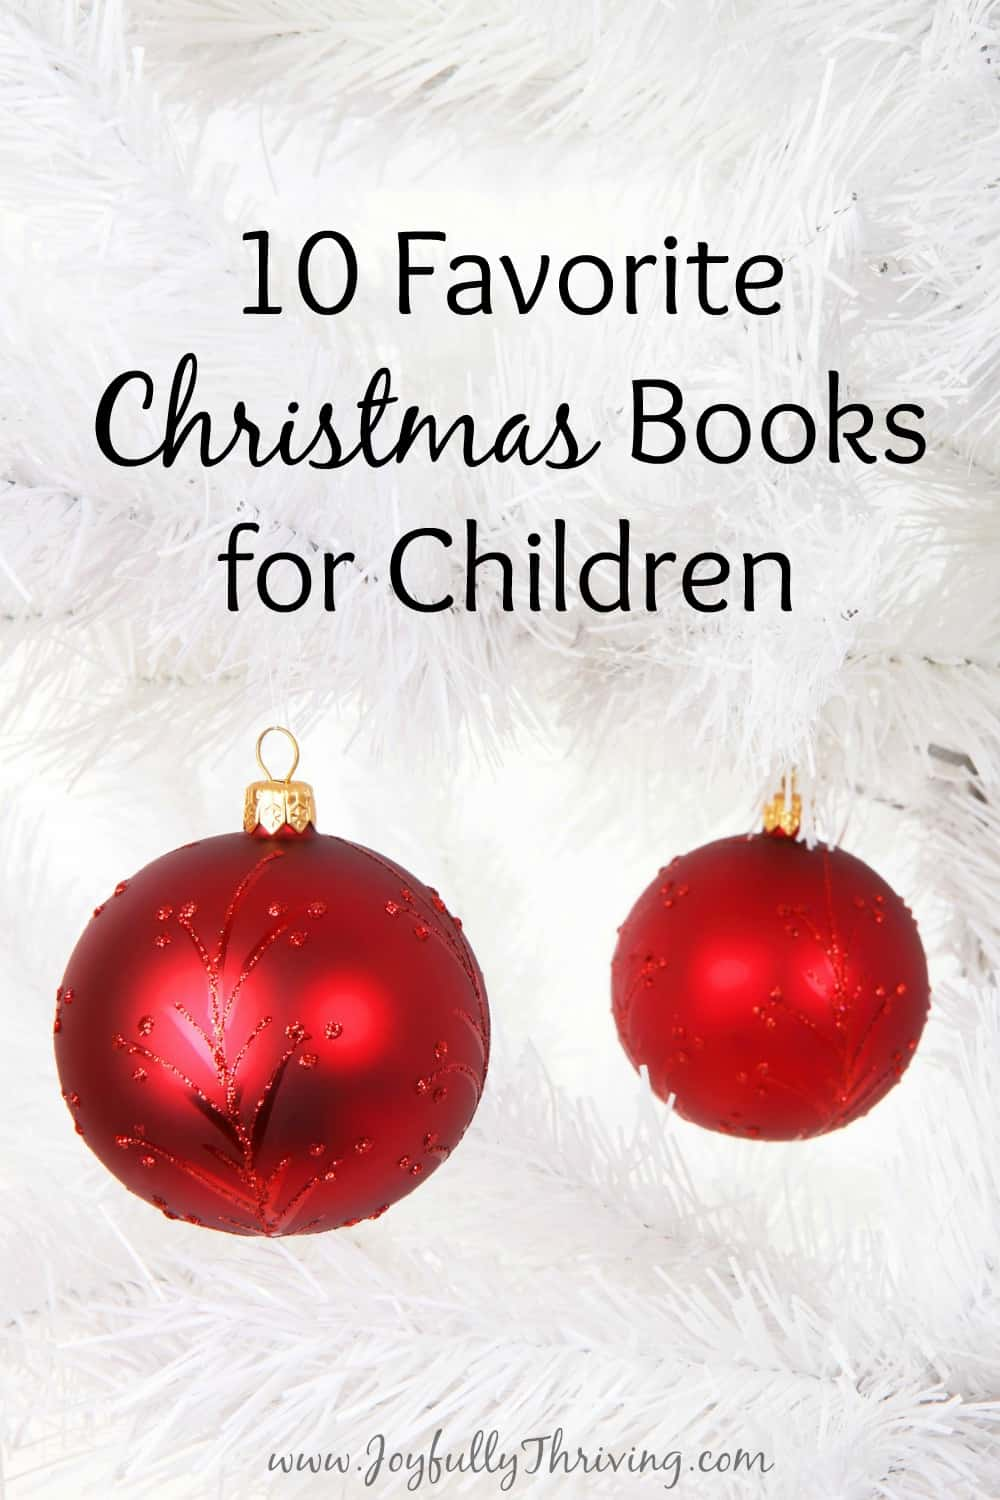 10 favorite christmas books for children if youre looking for some christmas picture books for your child check out this list by an early childhood teacher